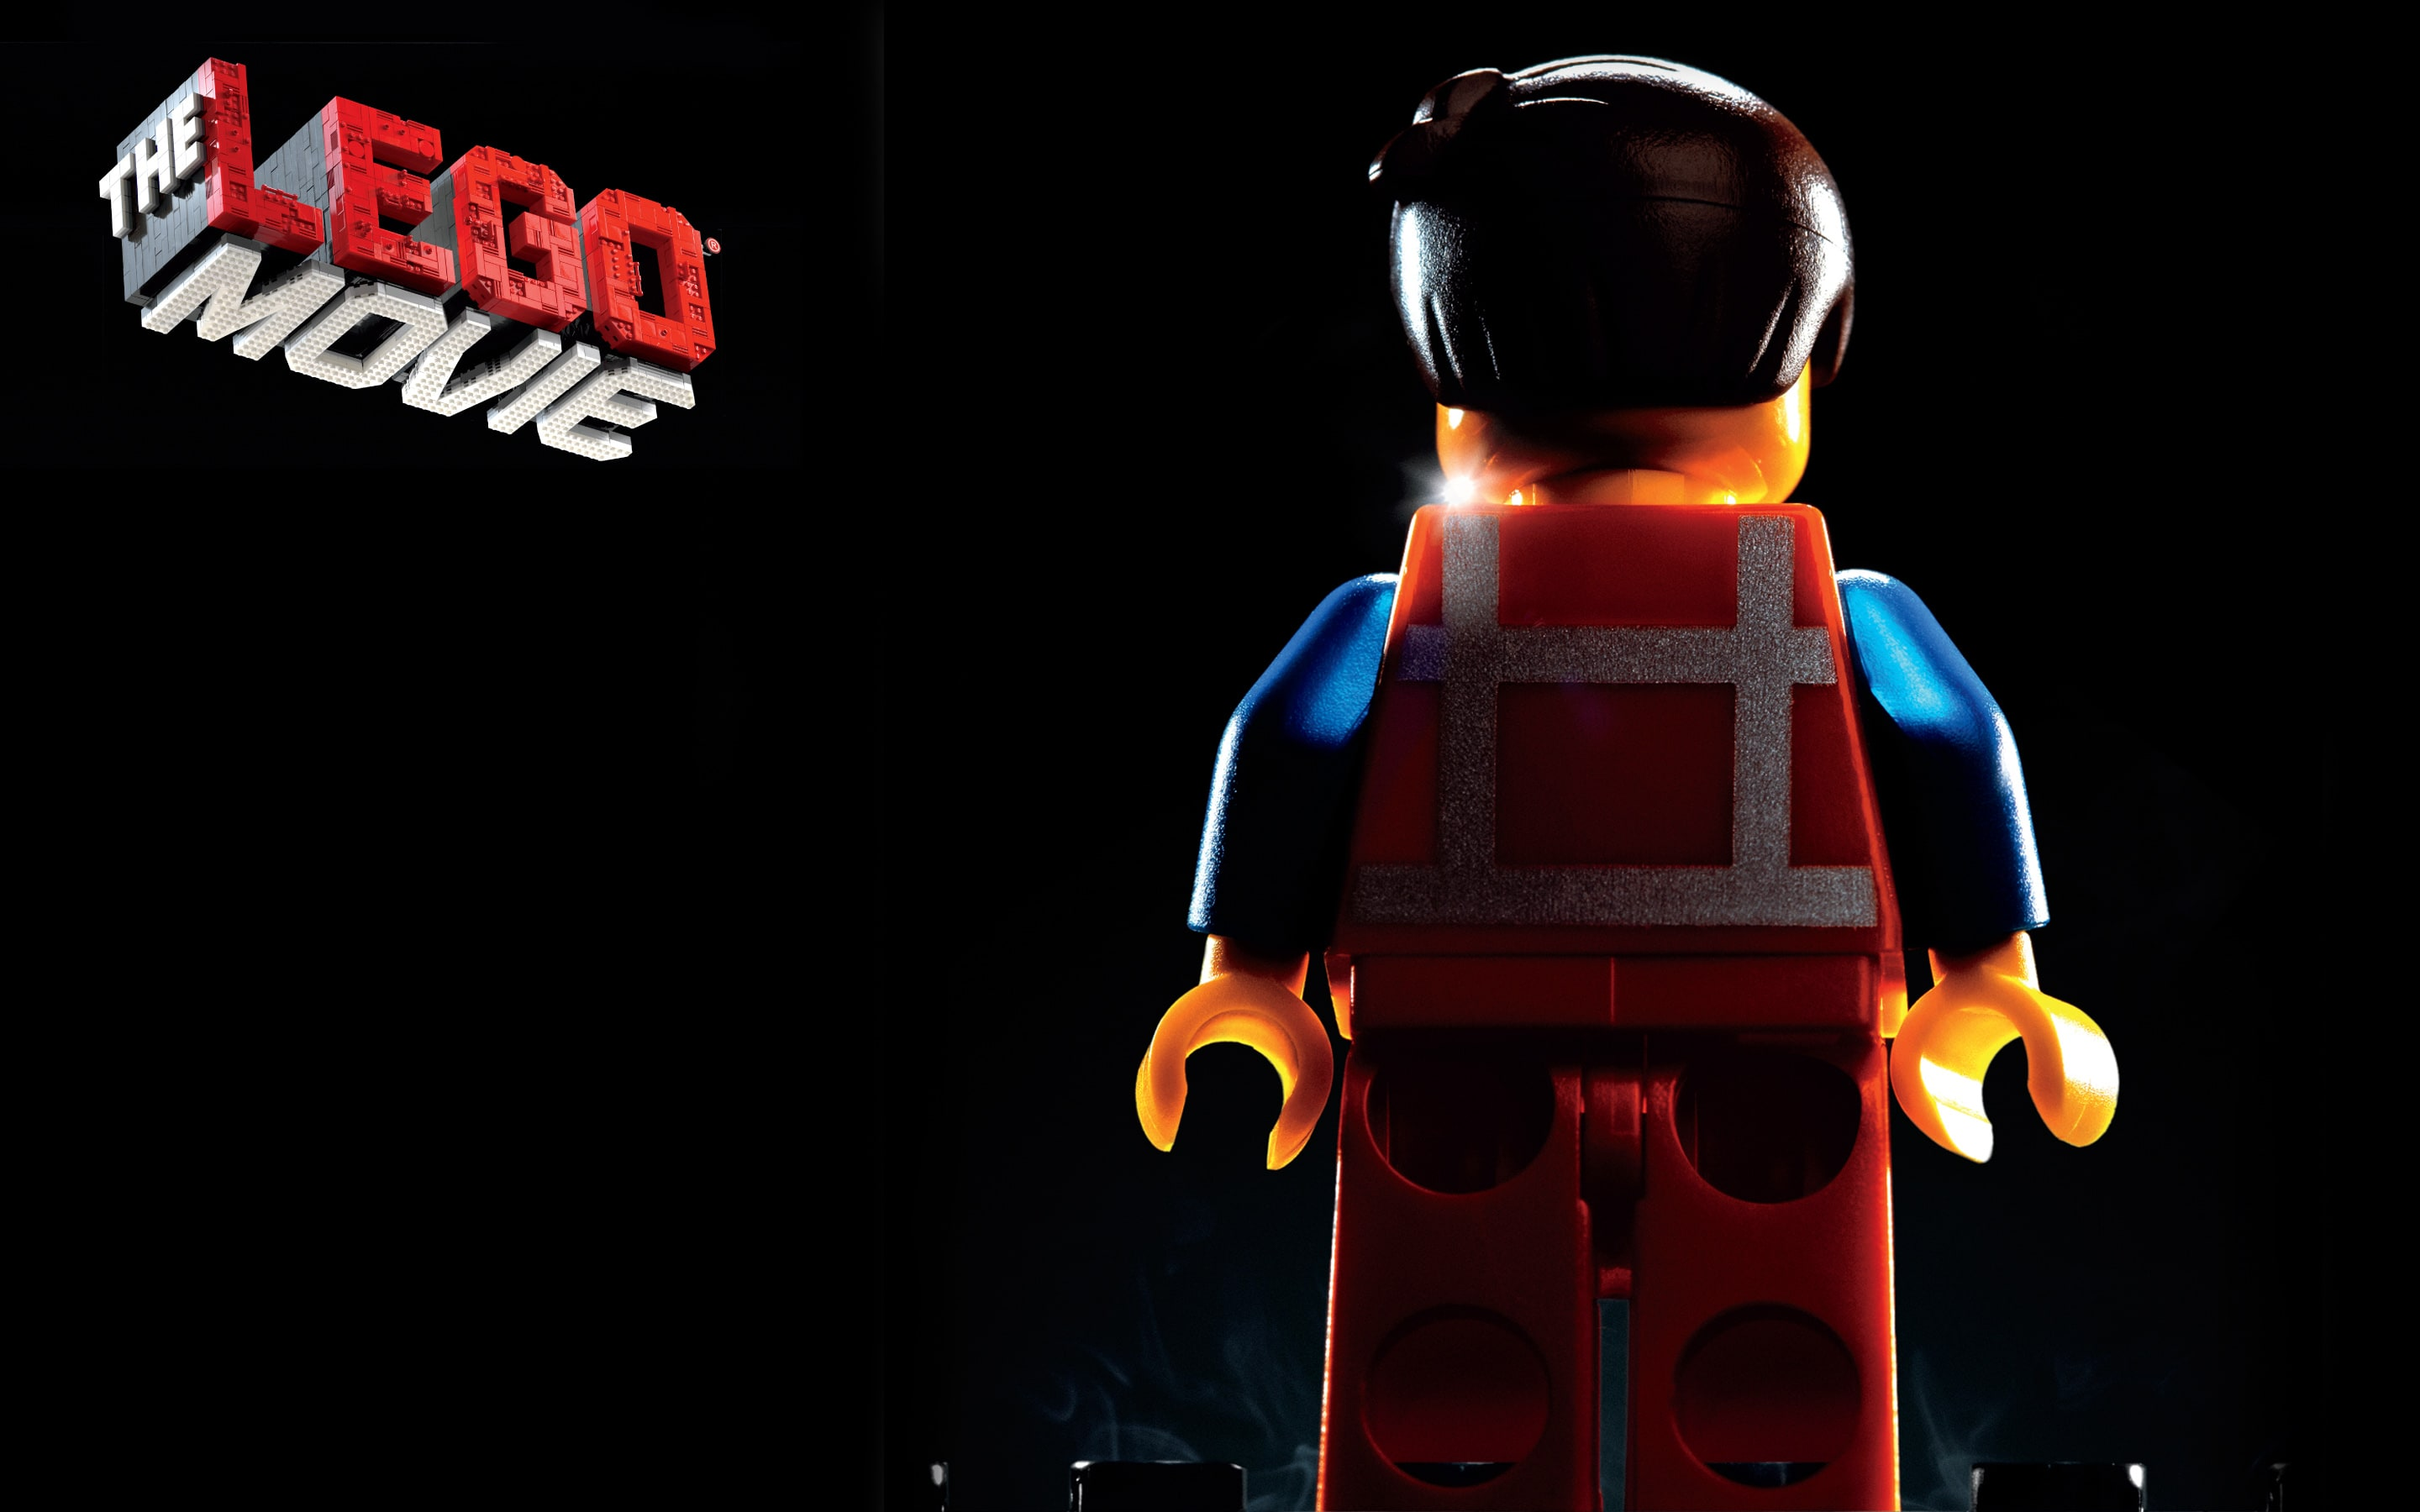 The Lego Movie Backgrounds